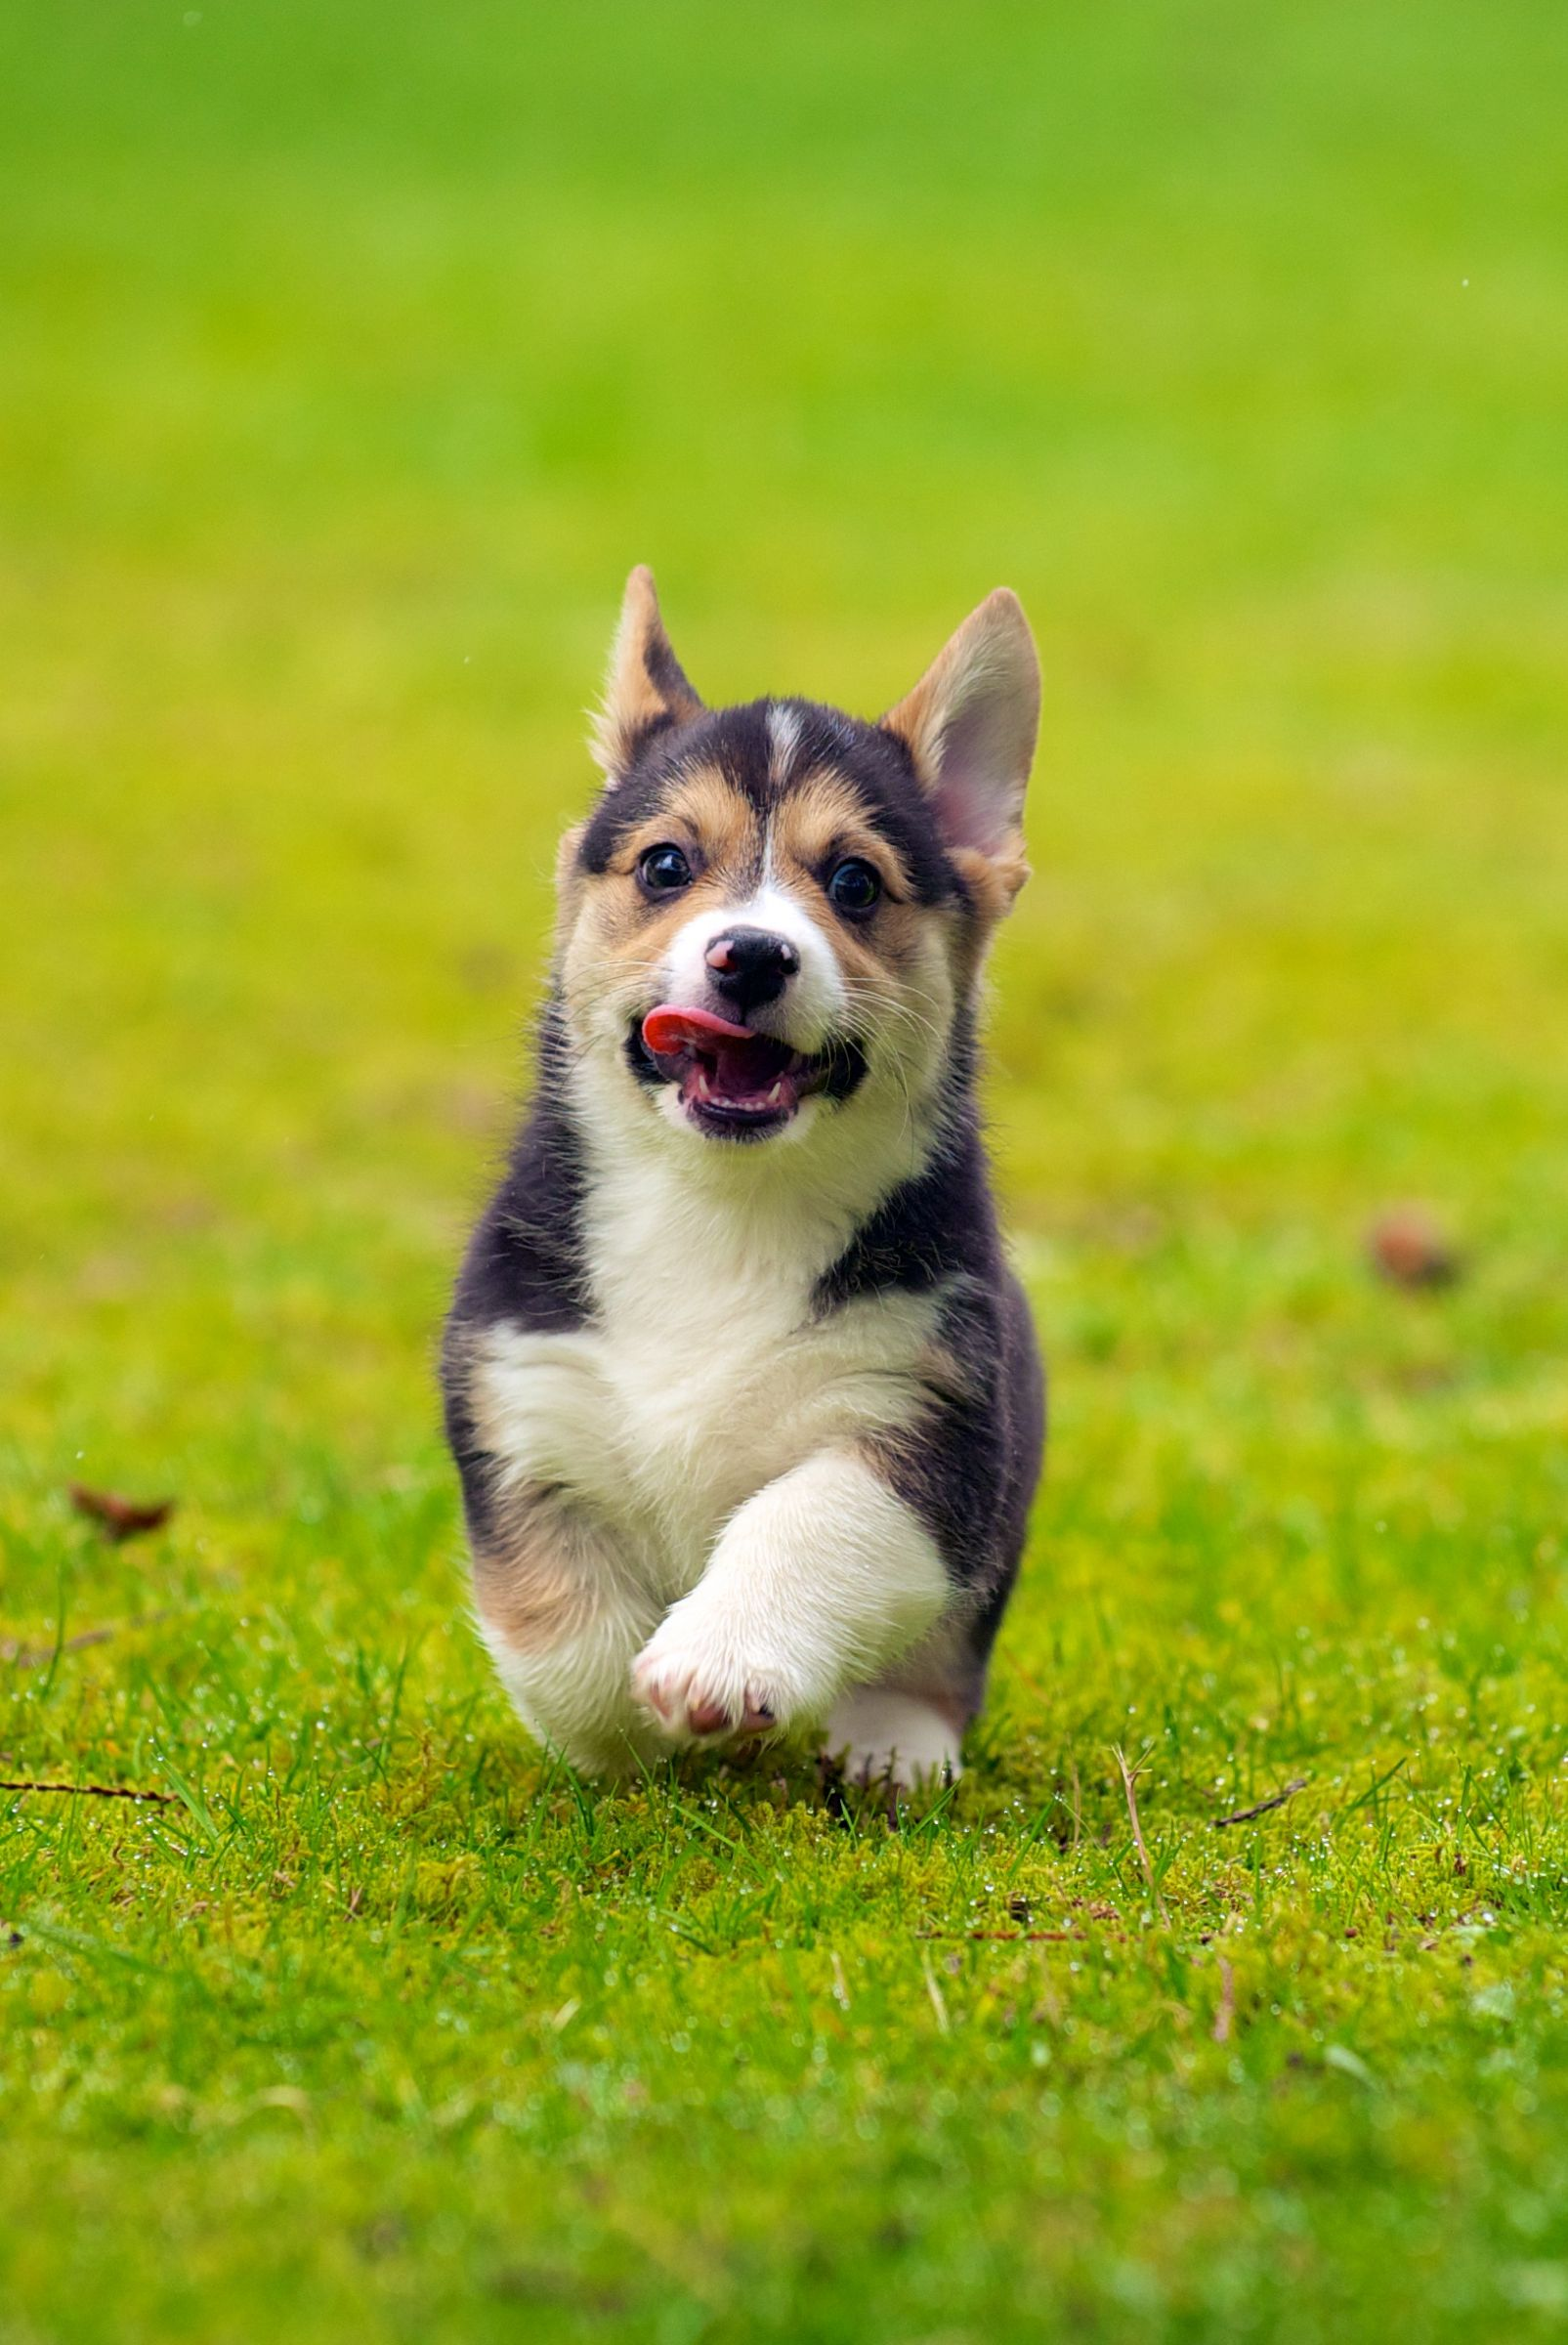 Pembroke Welsh Corgi Information Dog Breeds At Dogthelove